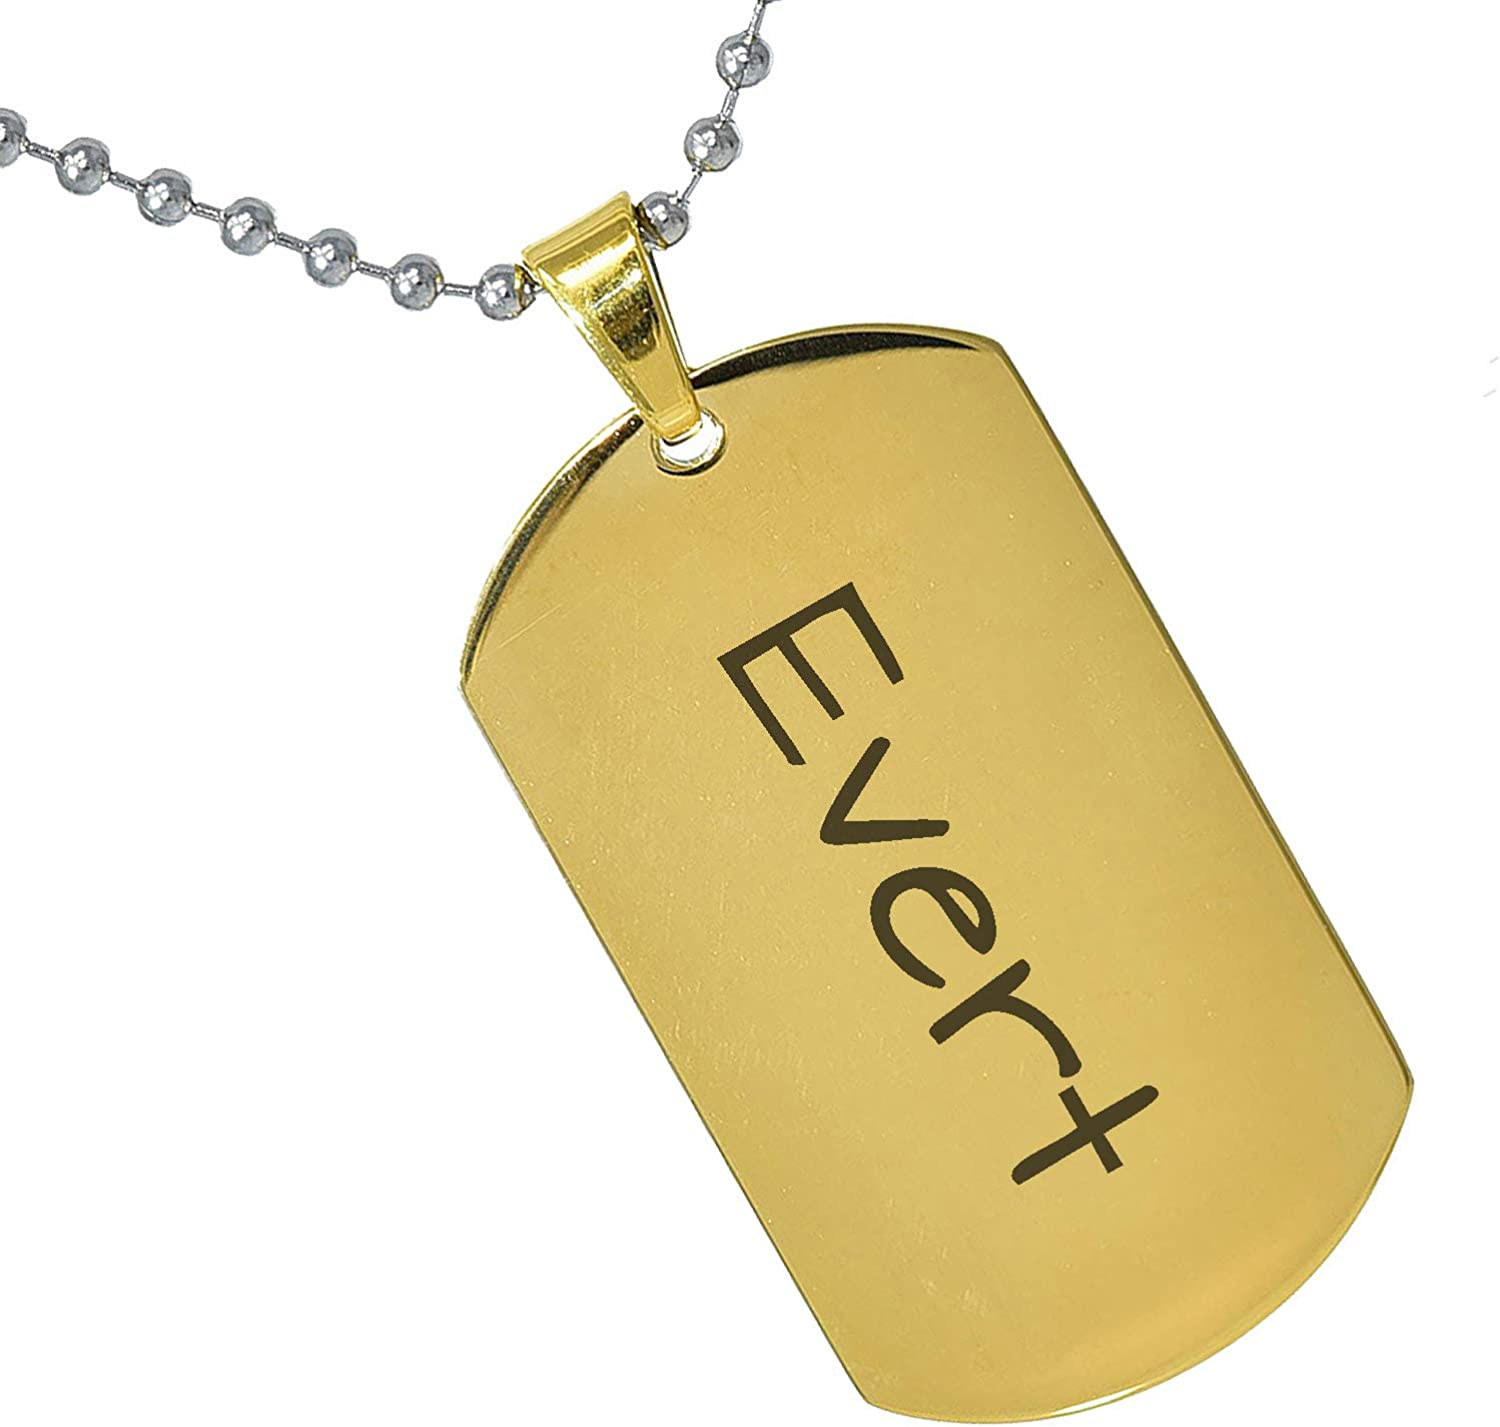 Stainless Steel Silver Gold Black Rose Gold Color Baby Name Evert Engraved Personalized Gifts For Son Daughter Boyfriend Girlfriend Initial Customizable Pendant Necklace Dog Tags 24 Ball Chain